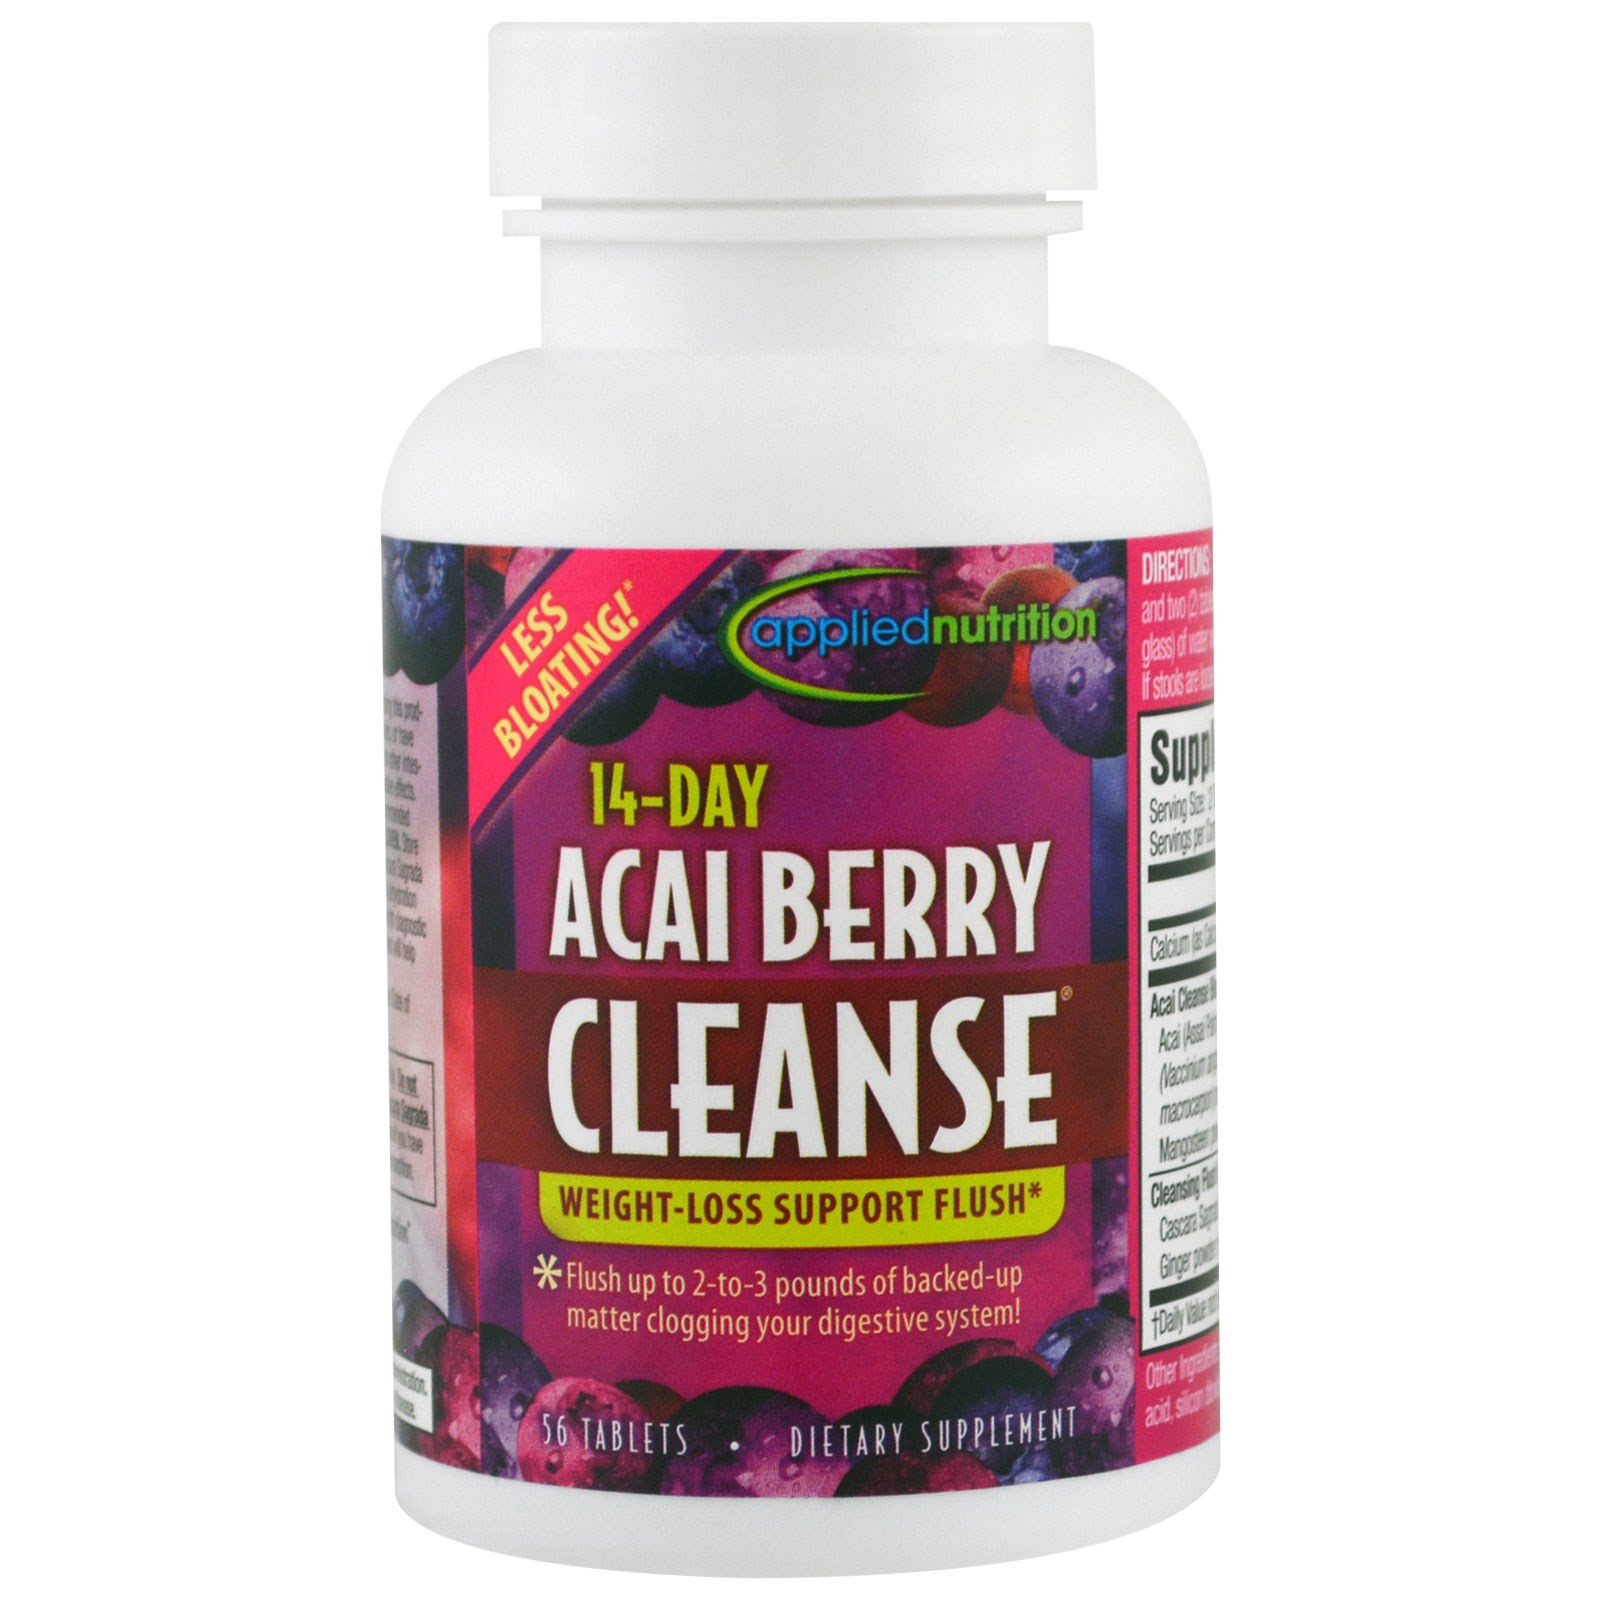 appliednutrition 14-Day Acai Berry Cleanse 56 Tablets ...